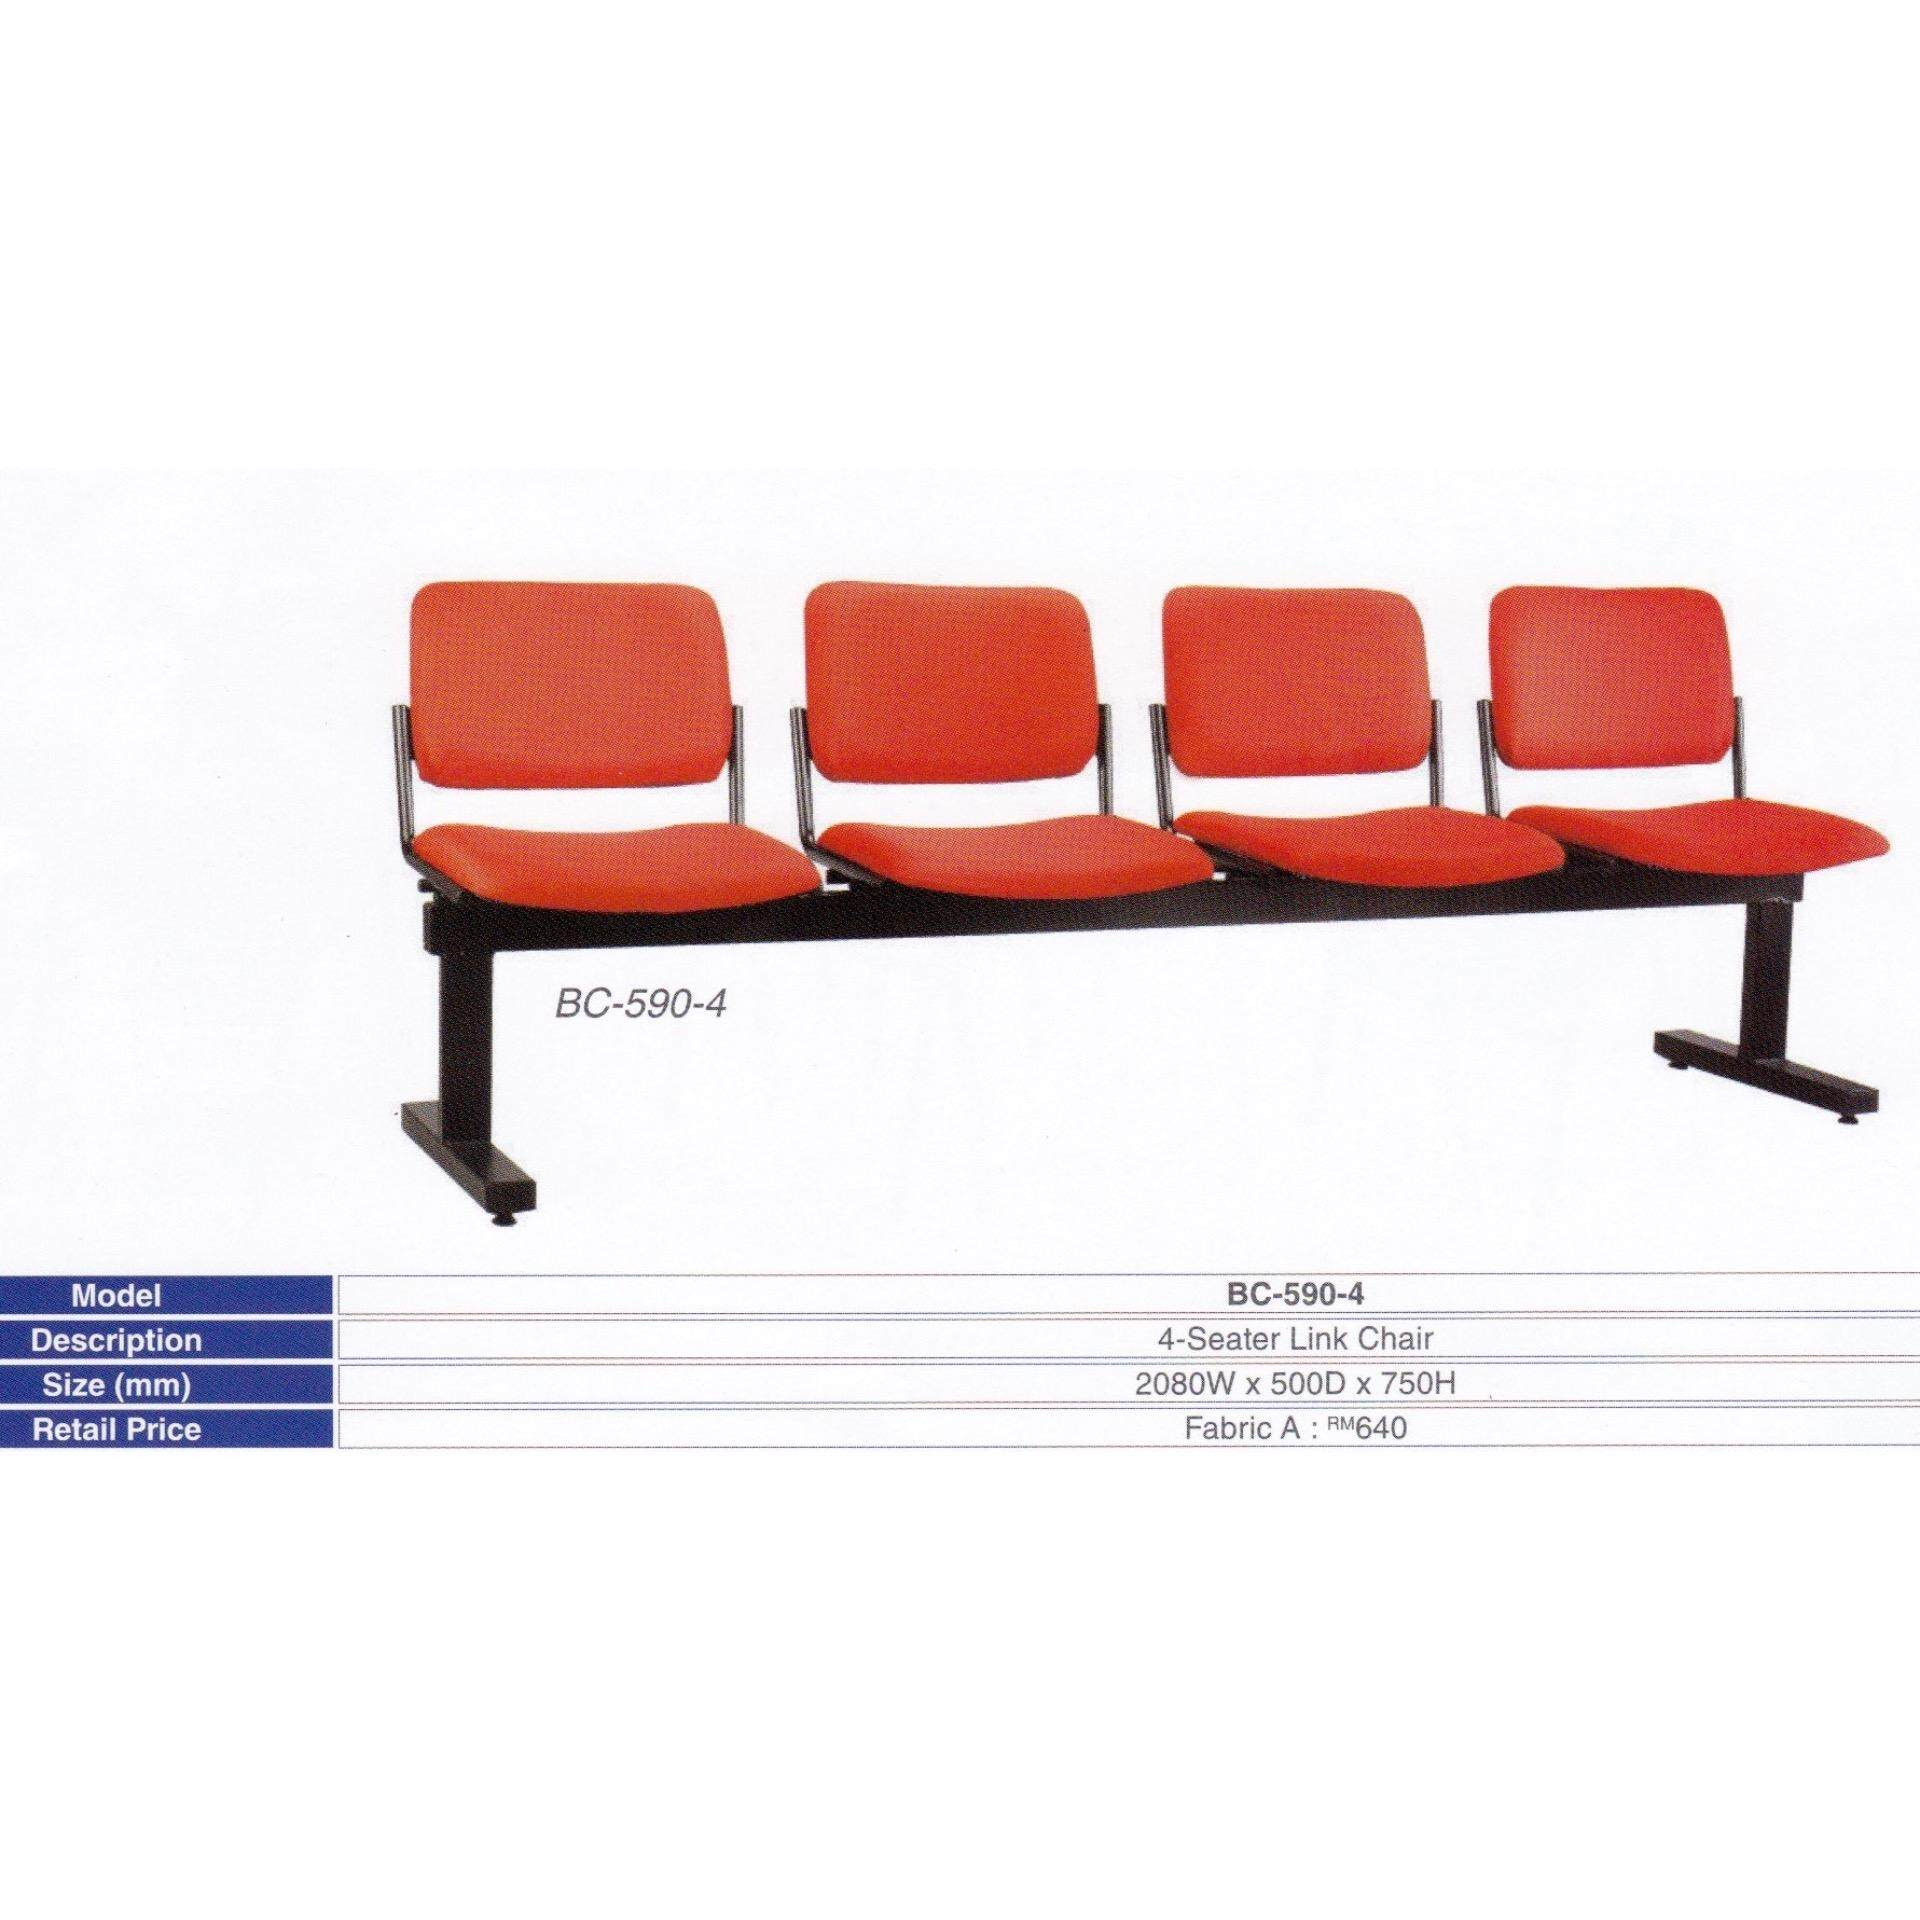 Deco Waiting Area 4-Seater Link Cushion Chair Hall Clinic Office (Red Color) L2080MM X D500MM X H750MM Pre-Order 2 Weeks